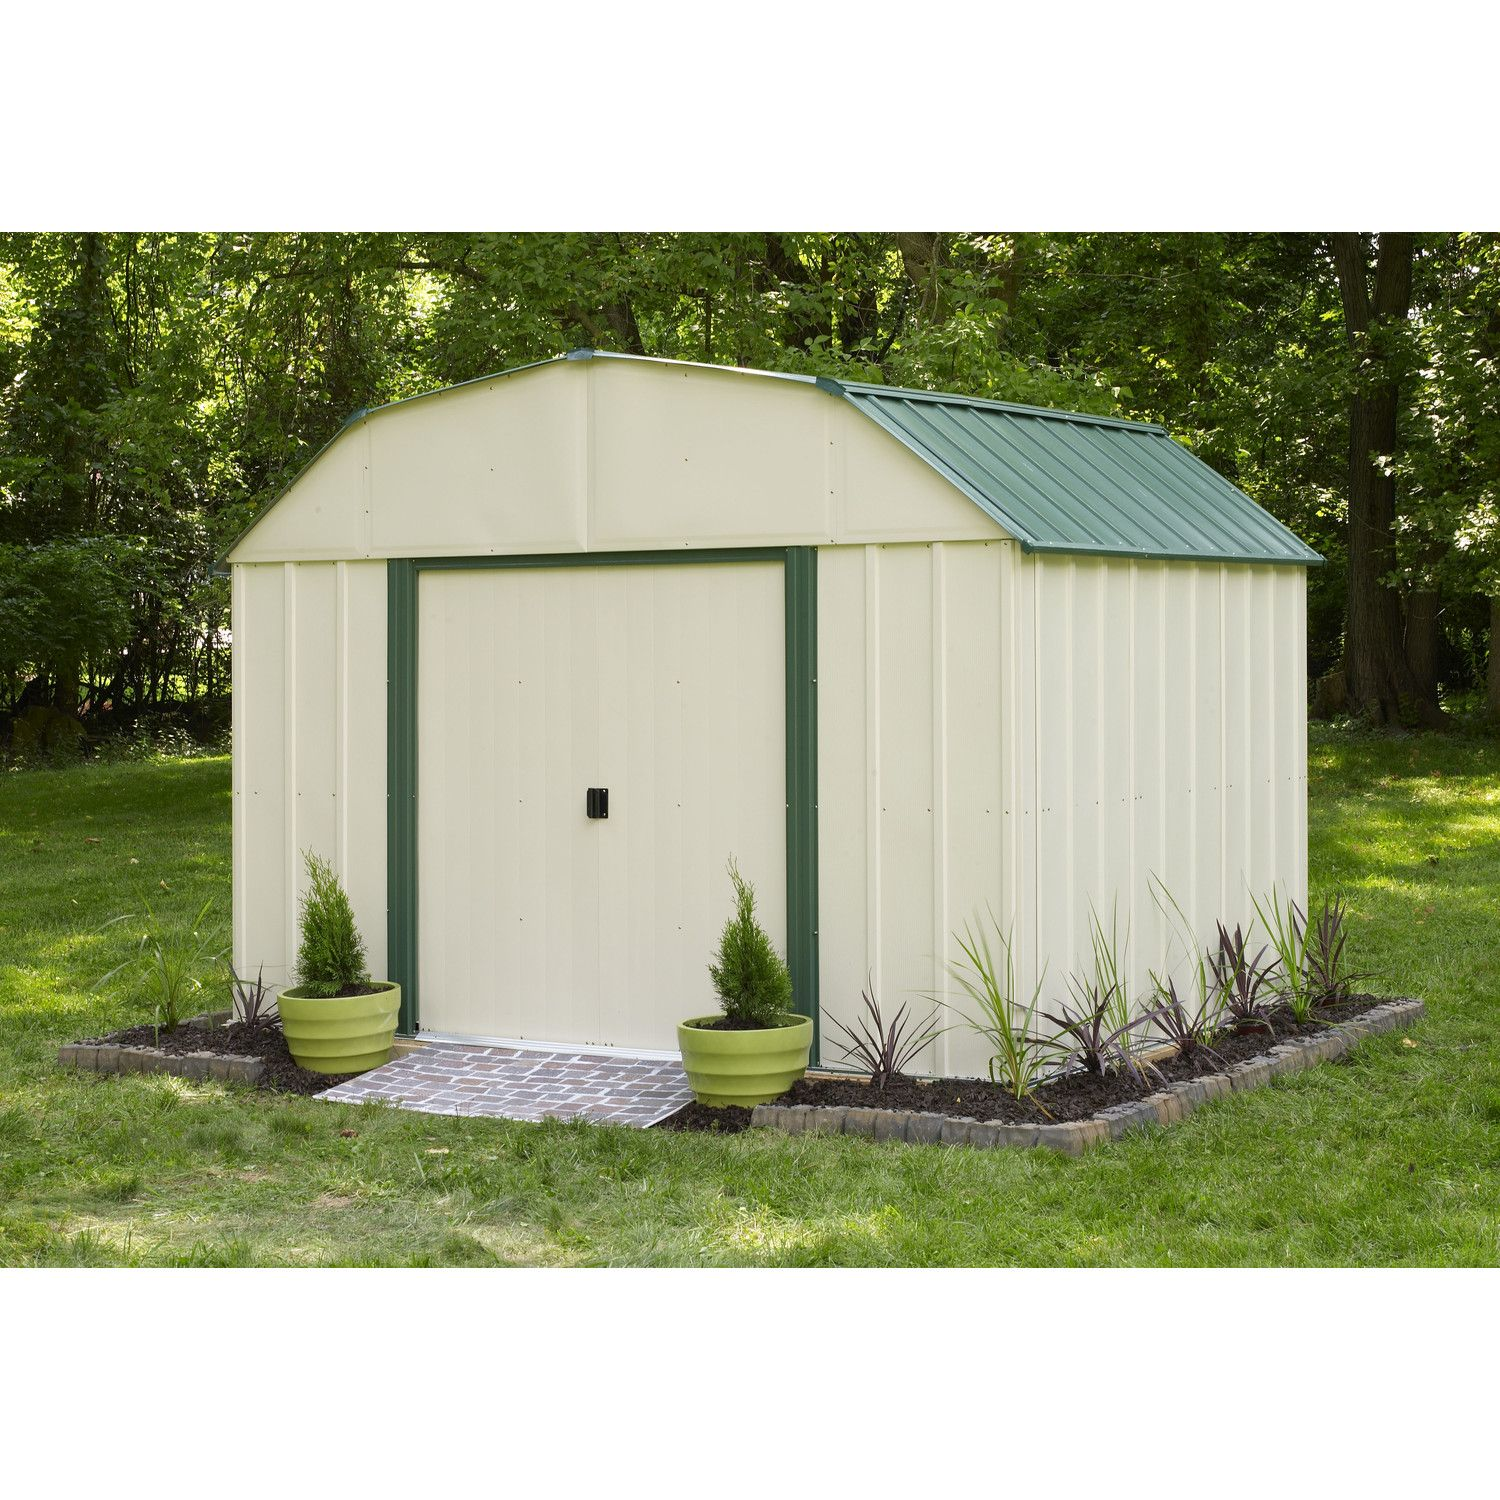 Arrow Sheridan 10 Ft W X 8 Ft D Steel Storage Shed Vinyl Storage Sheds Steel Storage Sheds Shed